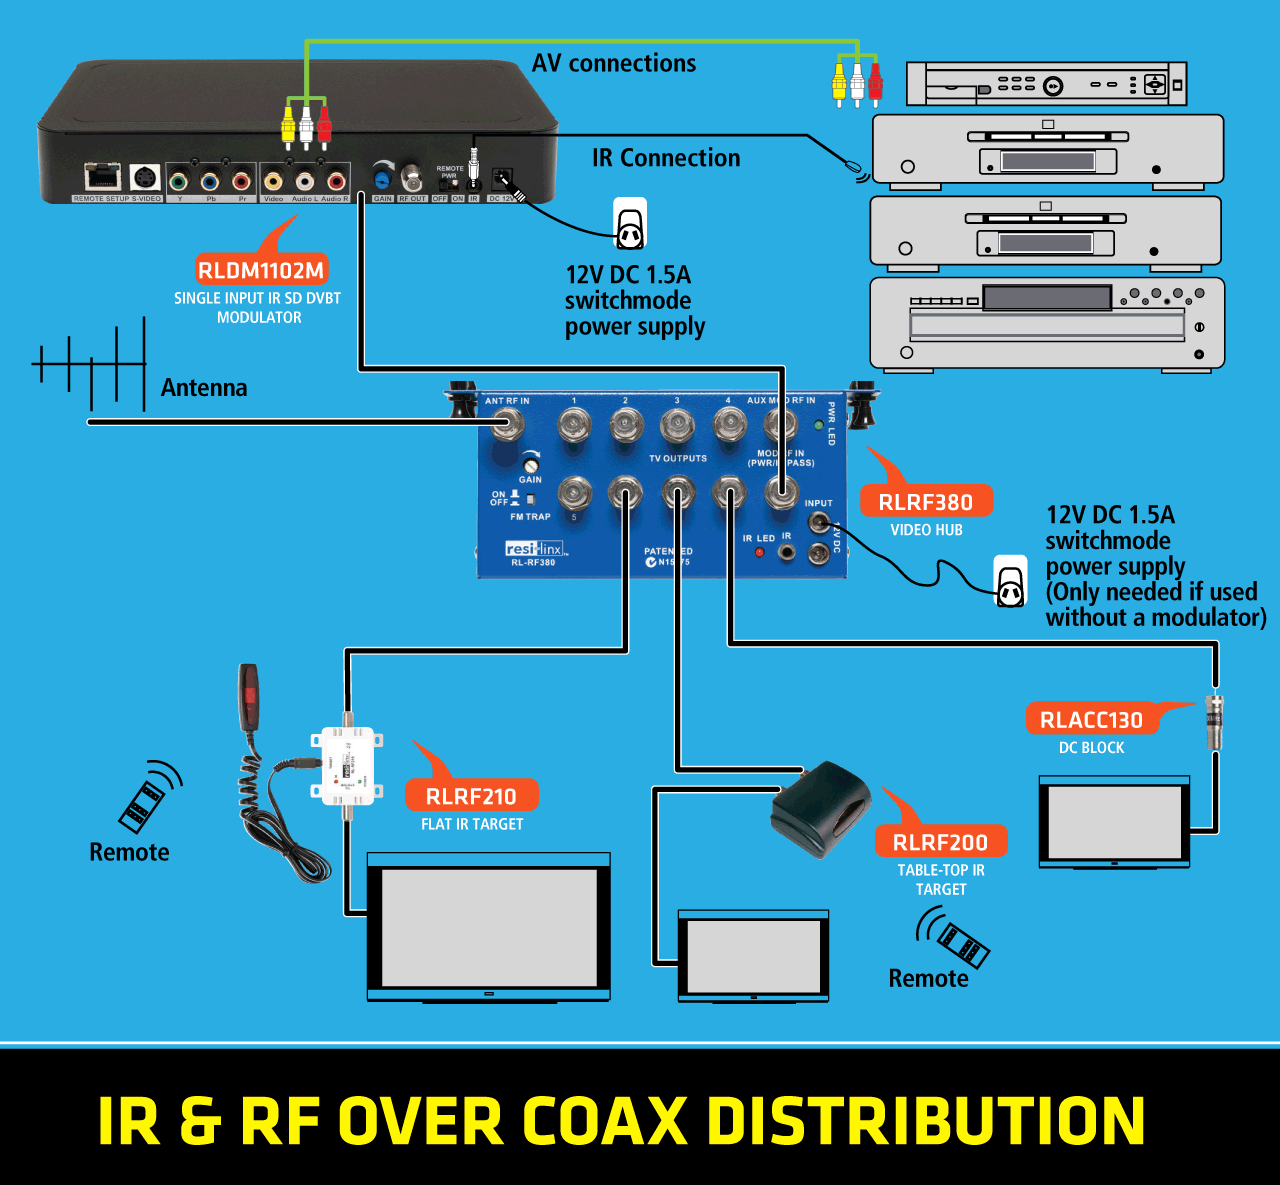 Resi Linx Rldm1102m Single Input Ir Dvbt Modulator Sd Digital Selector Switch Wiring Diagram Likewise Types Of Rotary Switches Connection